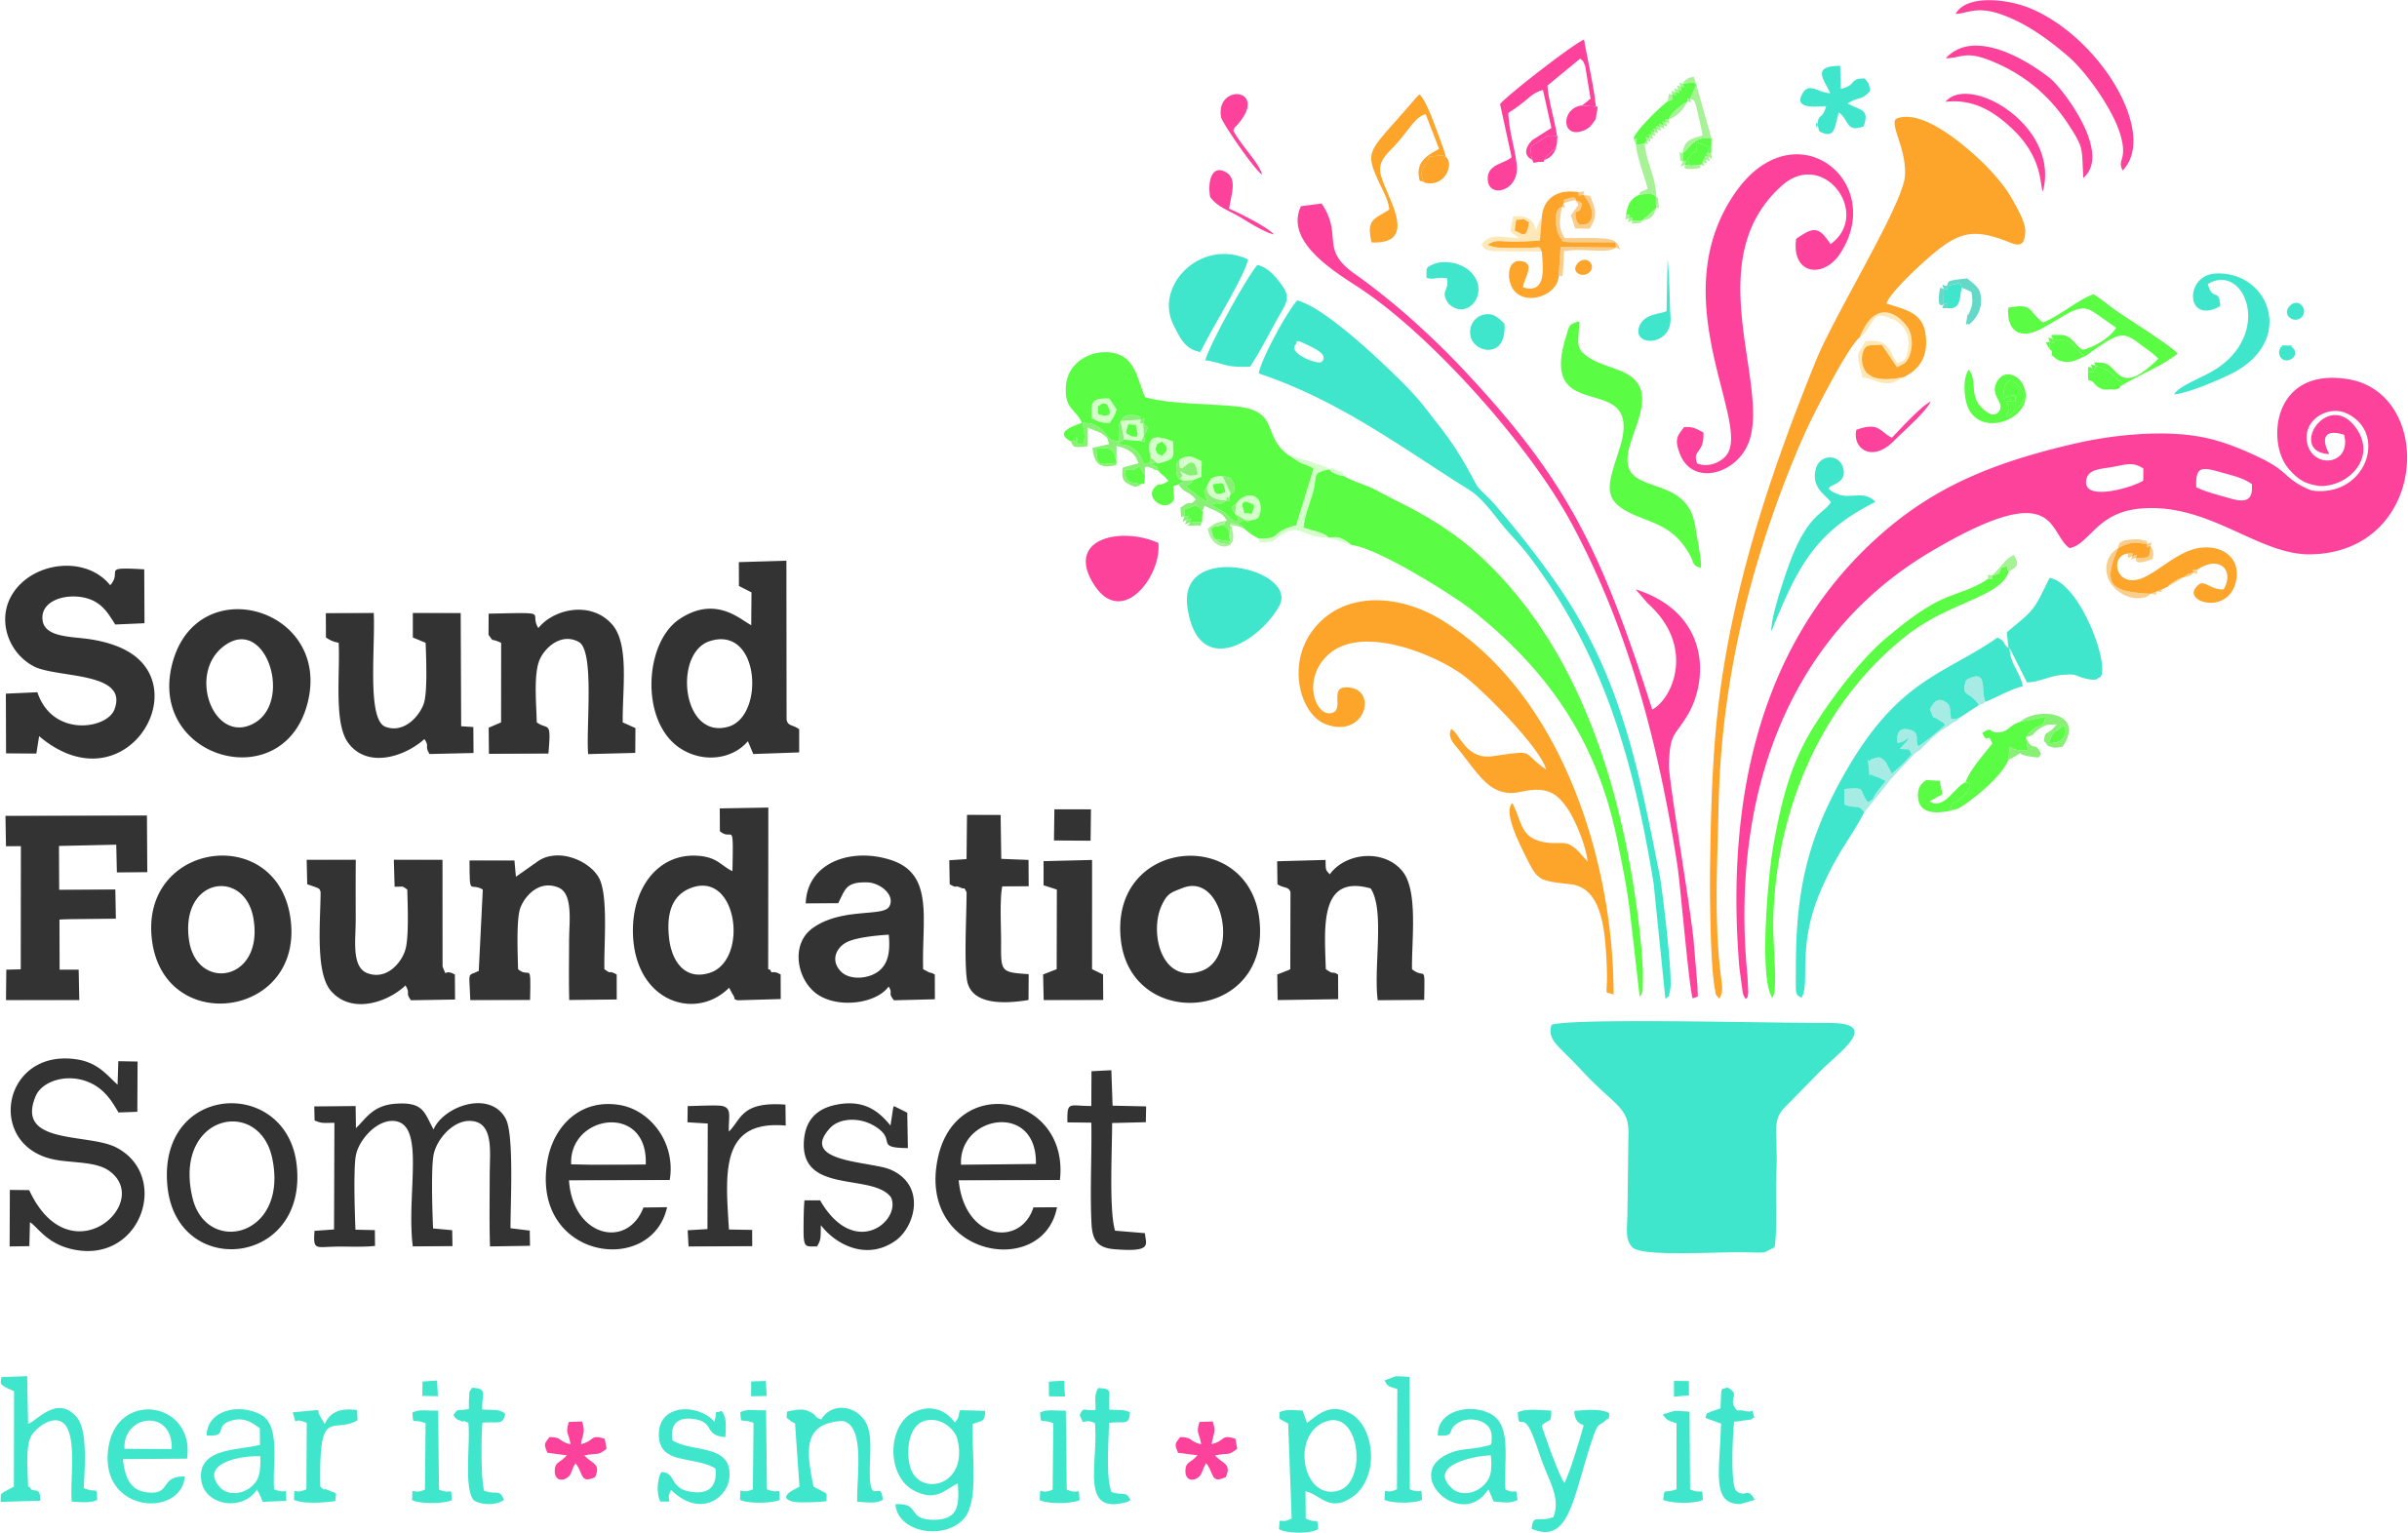 Sound Foundation Somerset